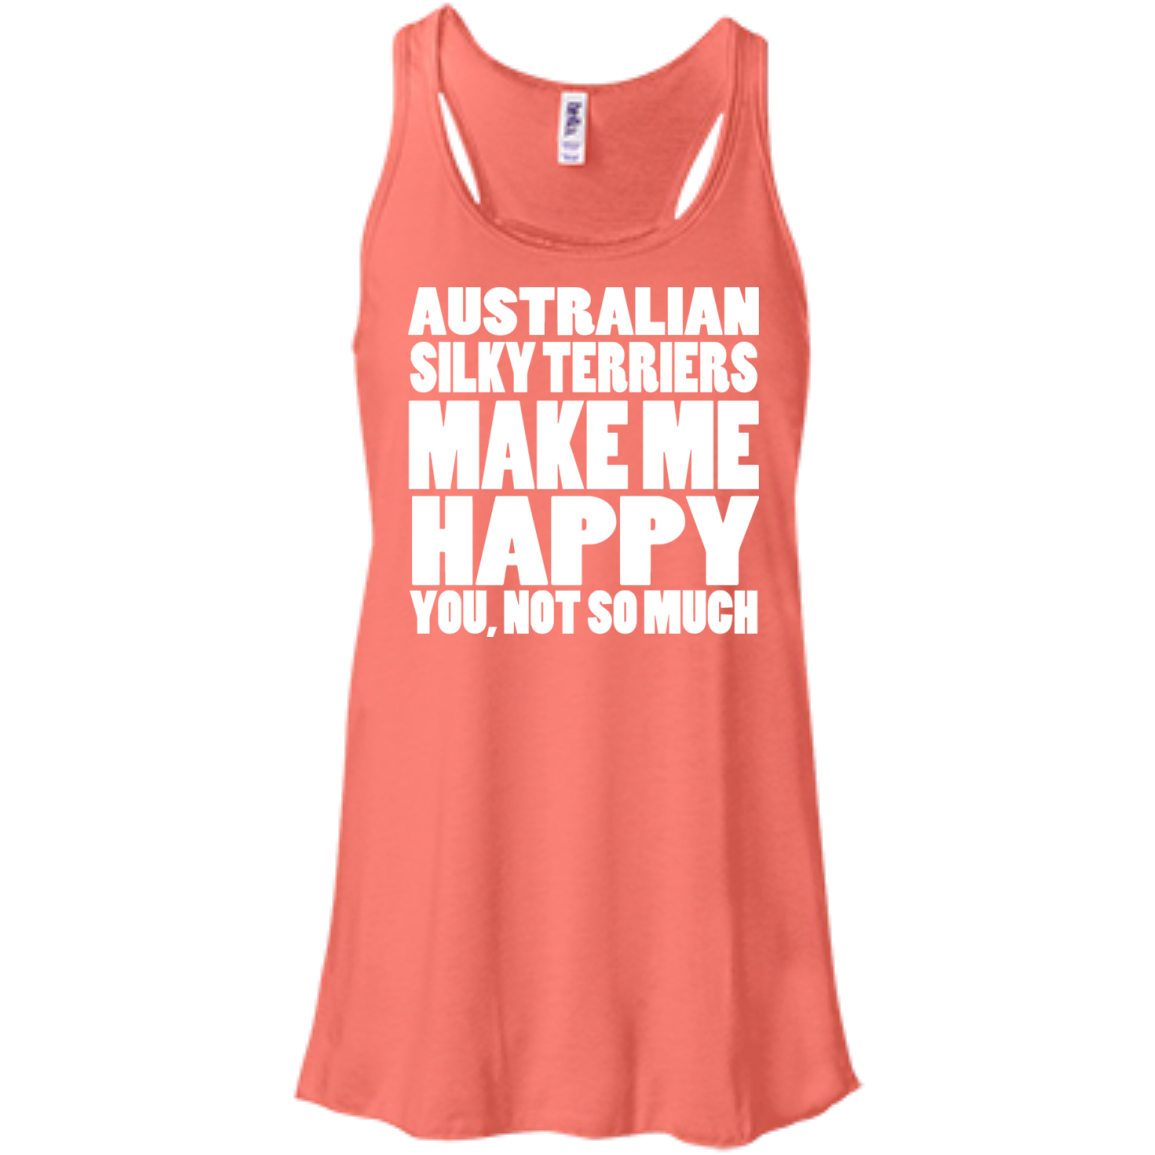 Australian Silky Terriers Make Me Happy You Not So Much Flowy Racerback Tanks